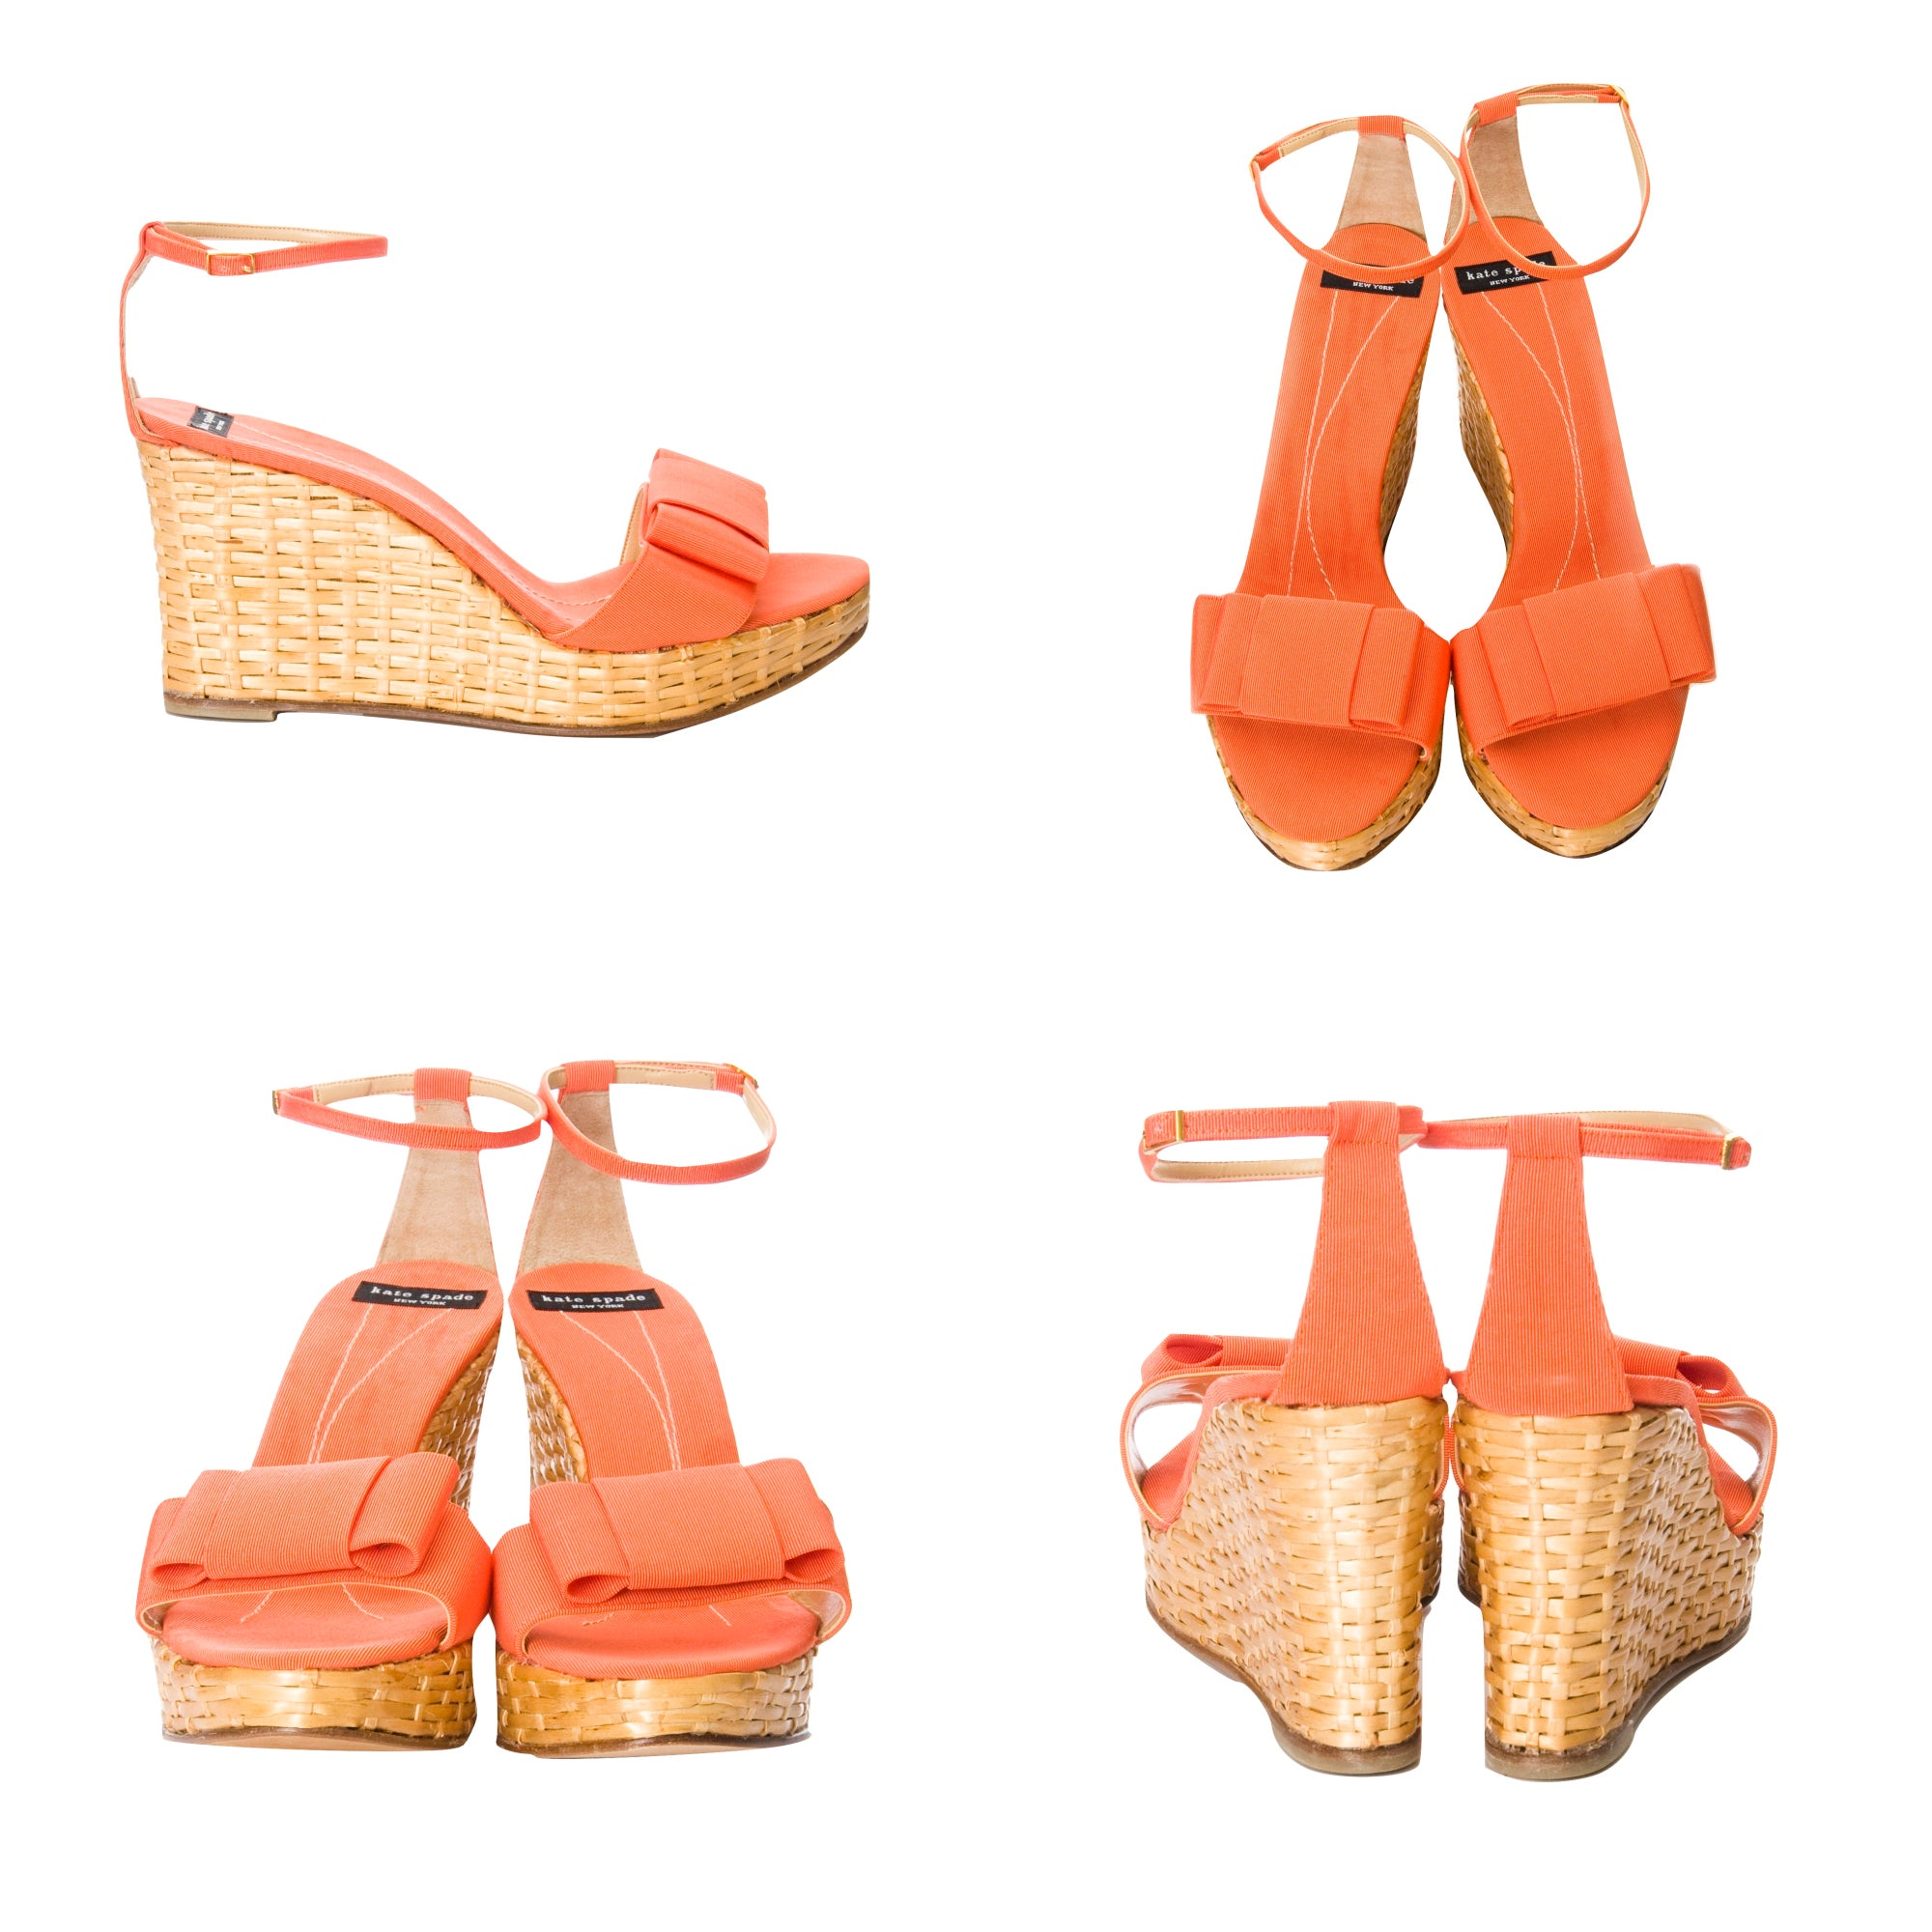 d63833a25c8 New Kate Spade Spring 2005 Collection Wicker Cabo Wedge Heels Sz 10 For  Sale at 1stdibs